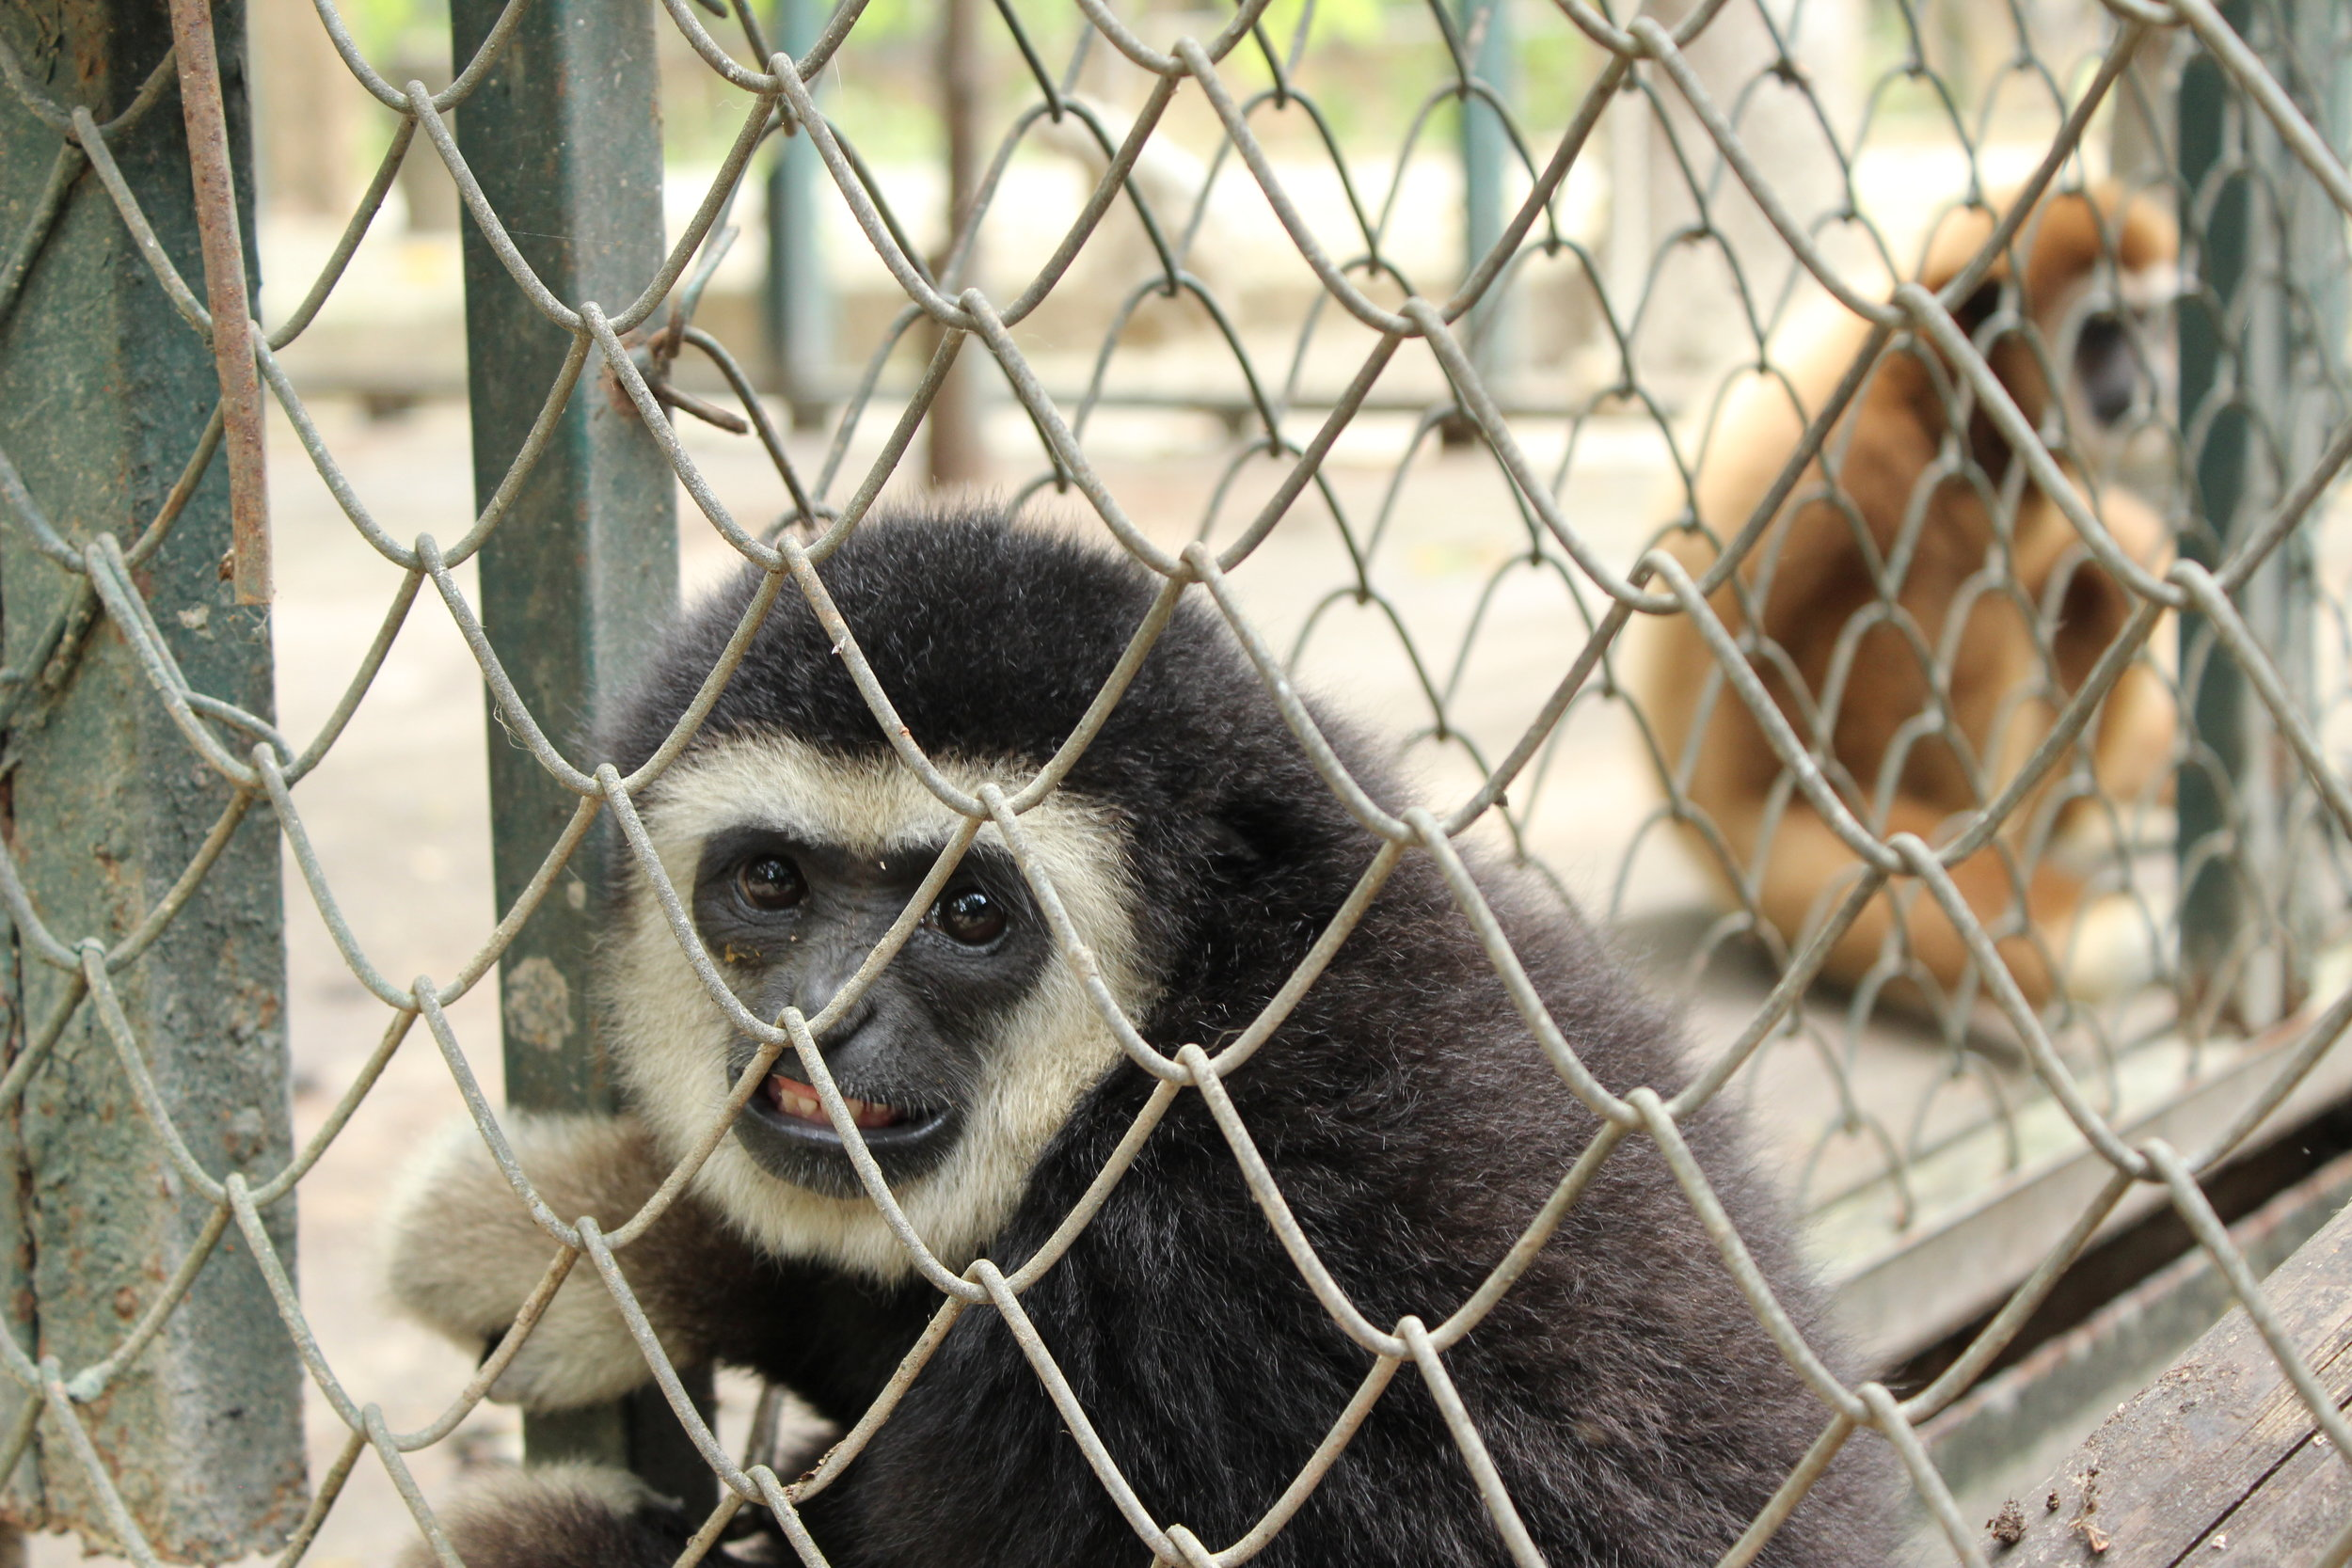 Juvenile gibbons, like the one giving me the stank eye here, were particularly lively and required special attention.